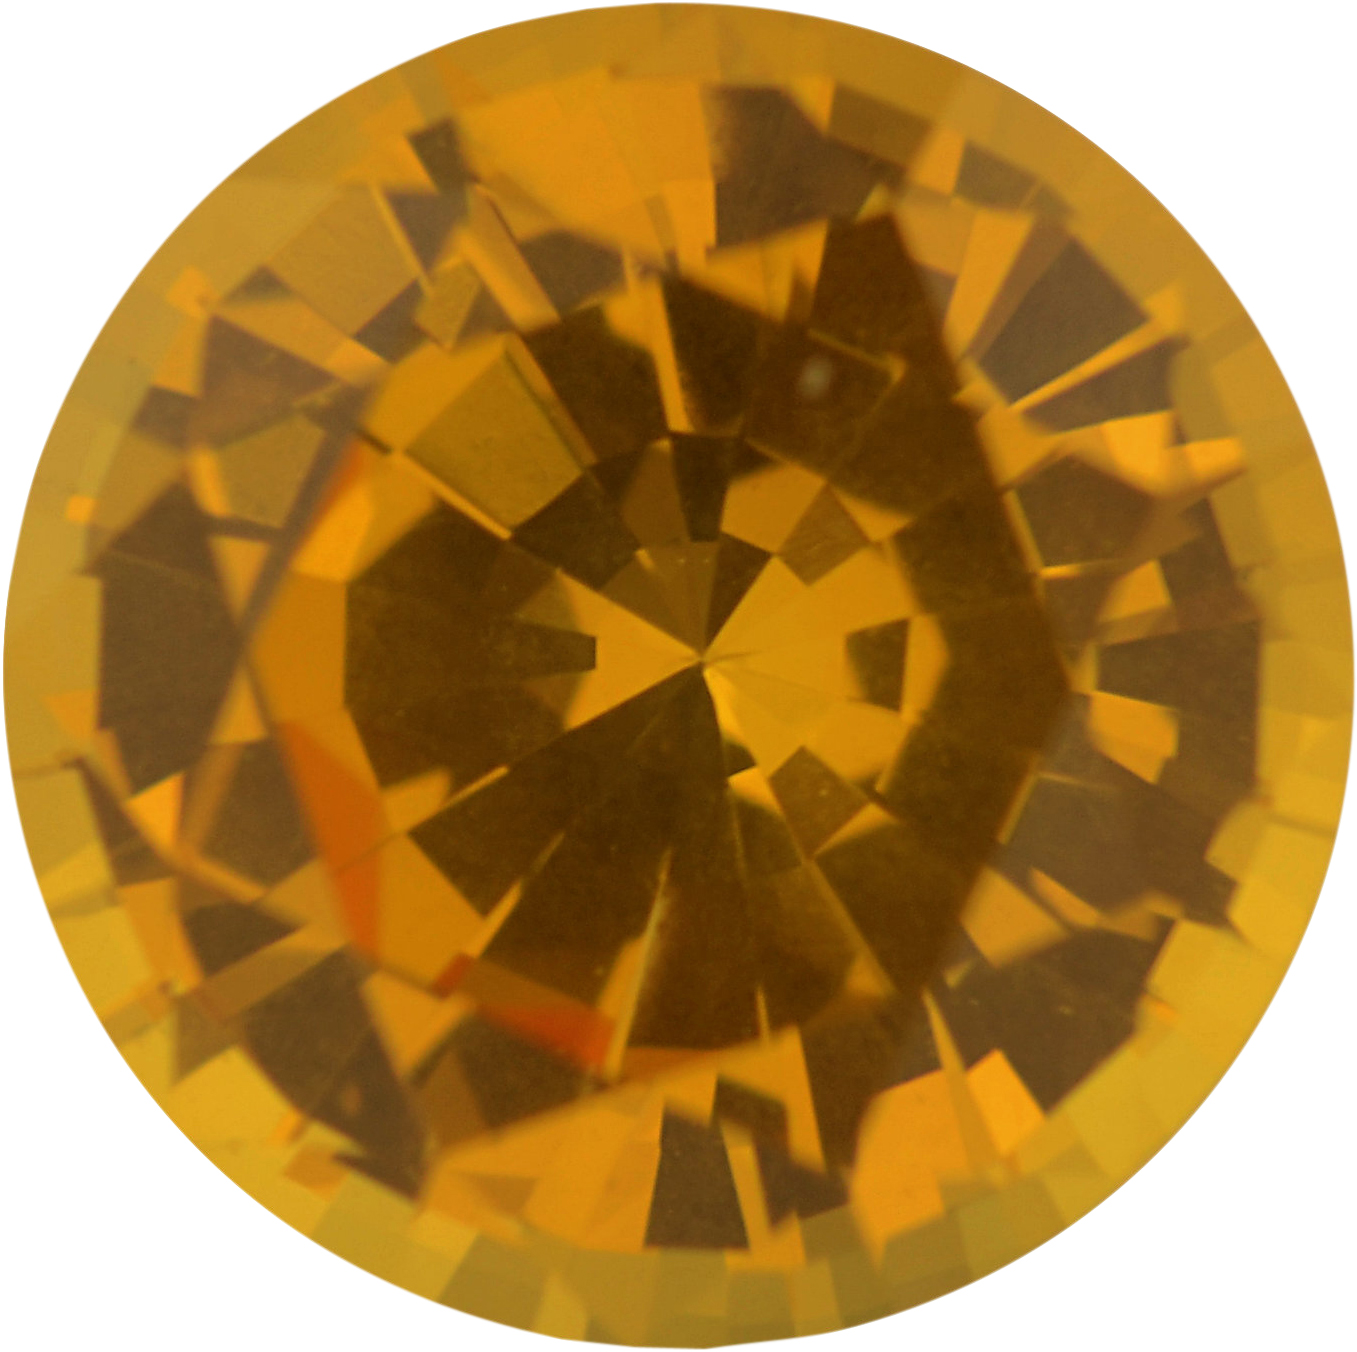 Faceted Sapphire Loose Gem in Round Cut, Vibrant Orangy Yellow, 6.4 mm, 1.23 Carats